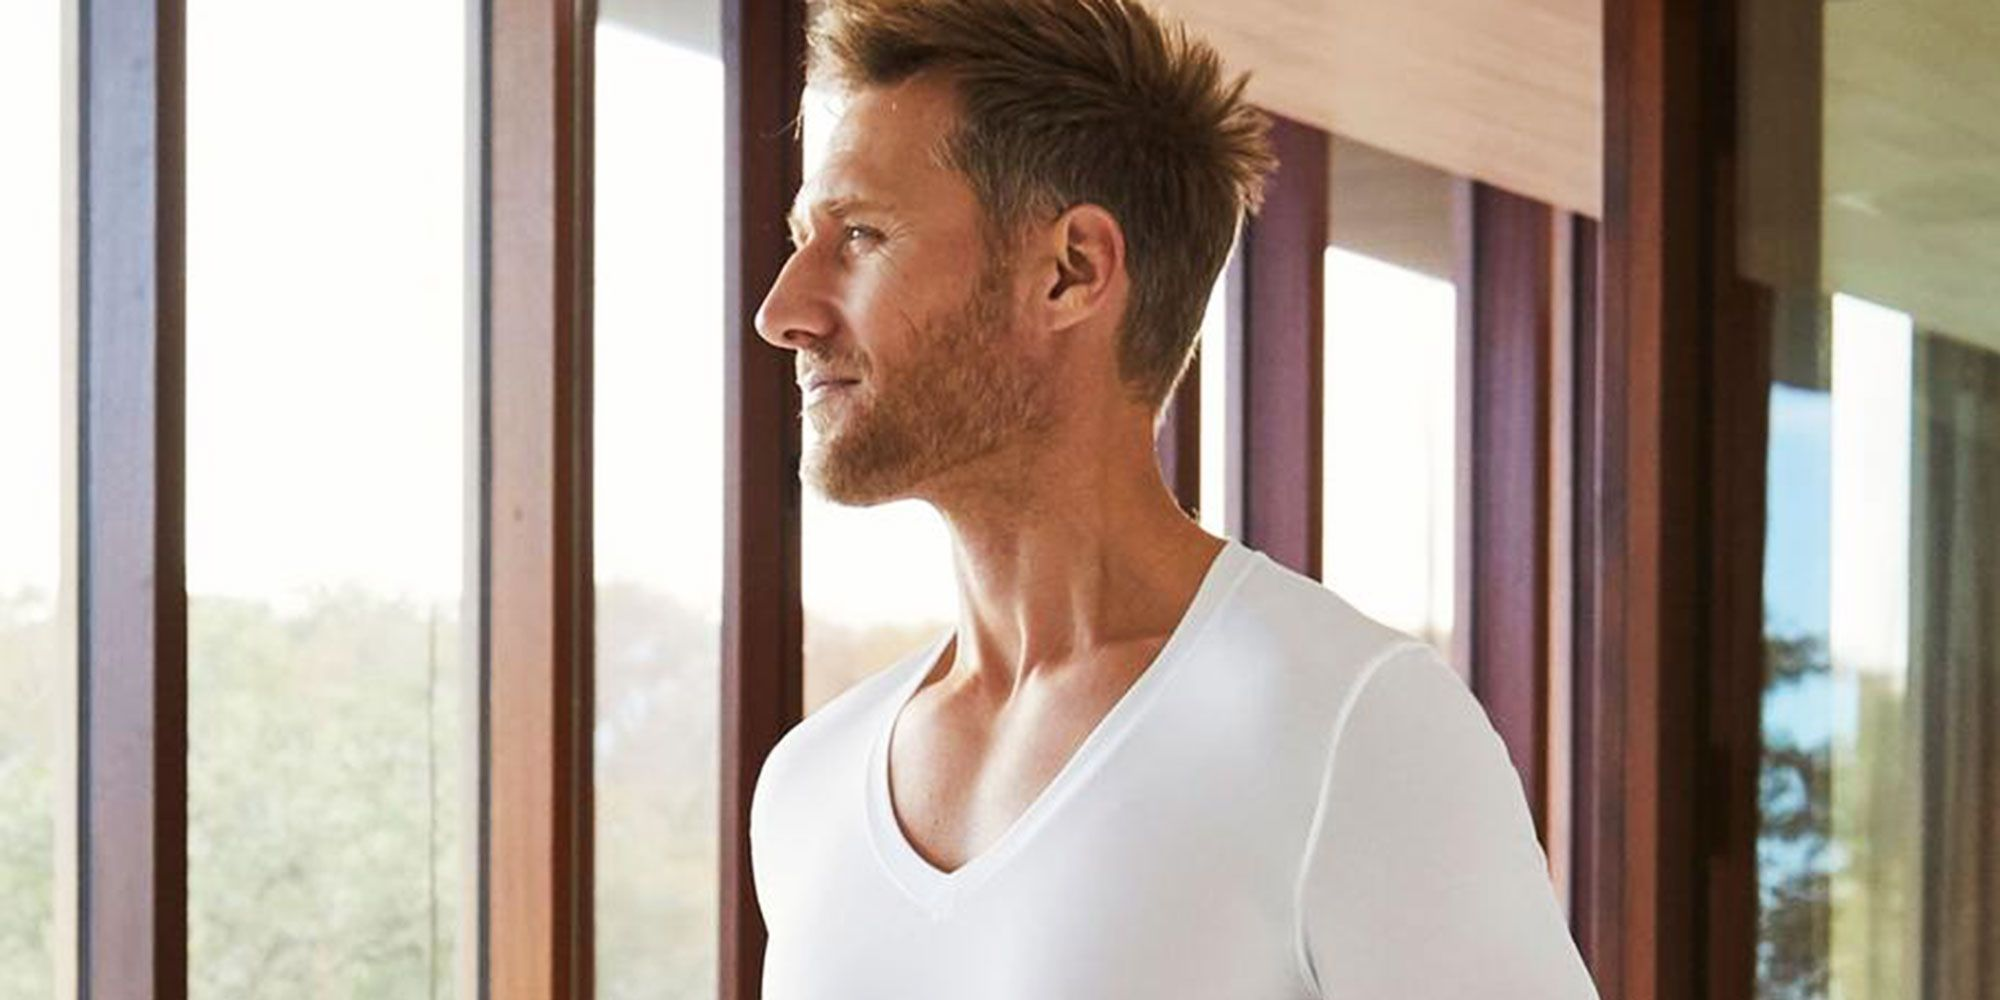 The 14 Best Undershirts for Men to Control Armpit Sweat